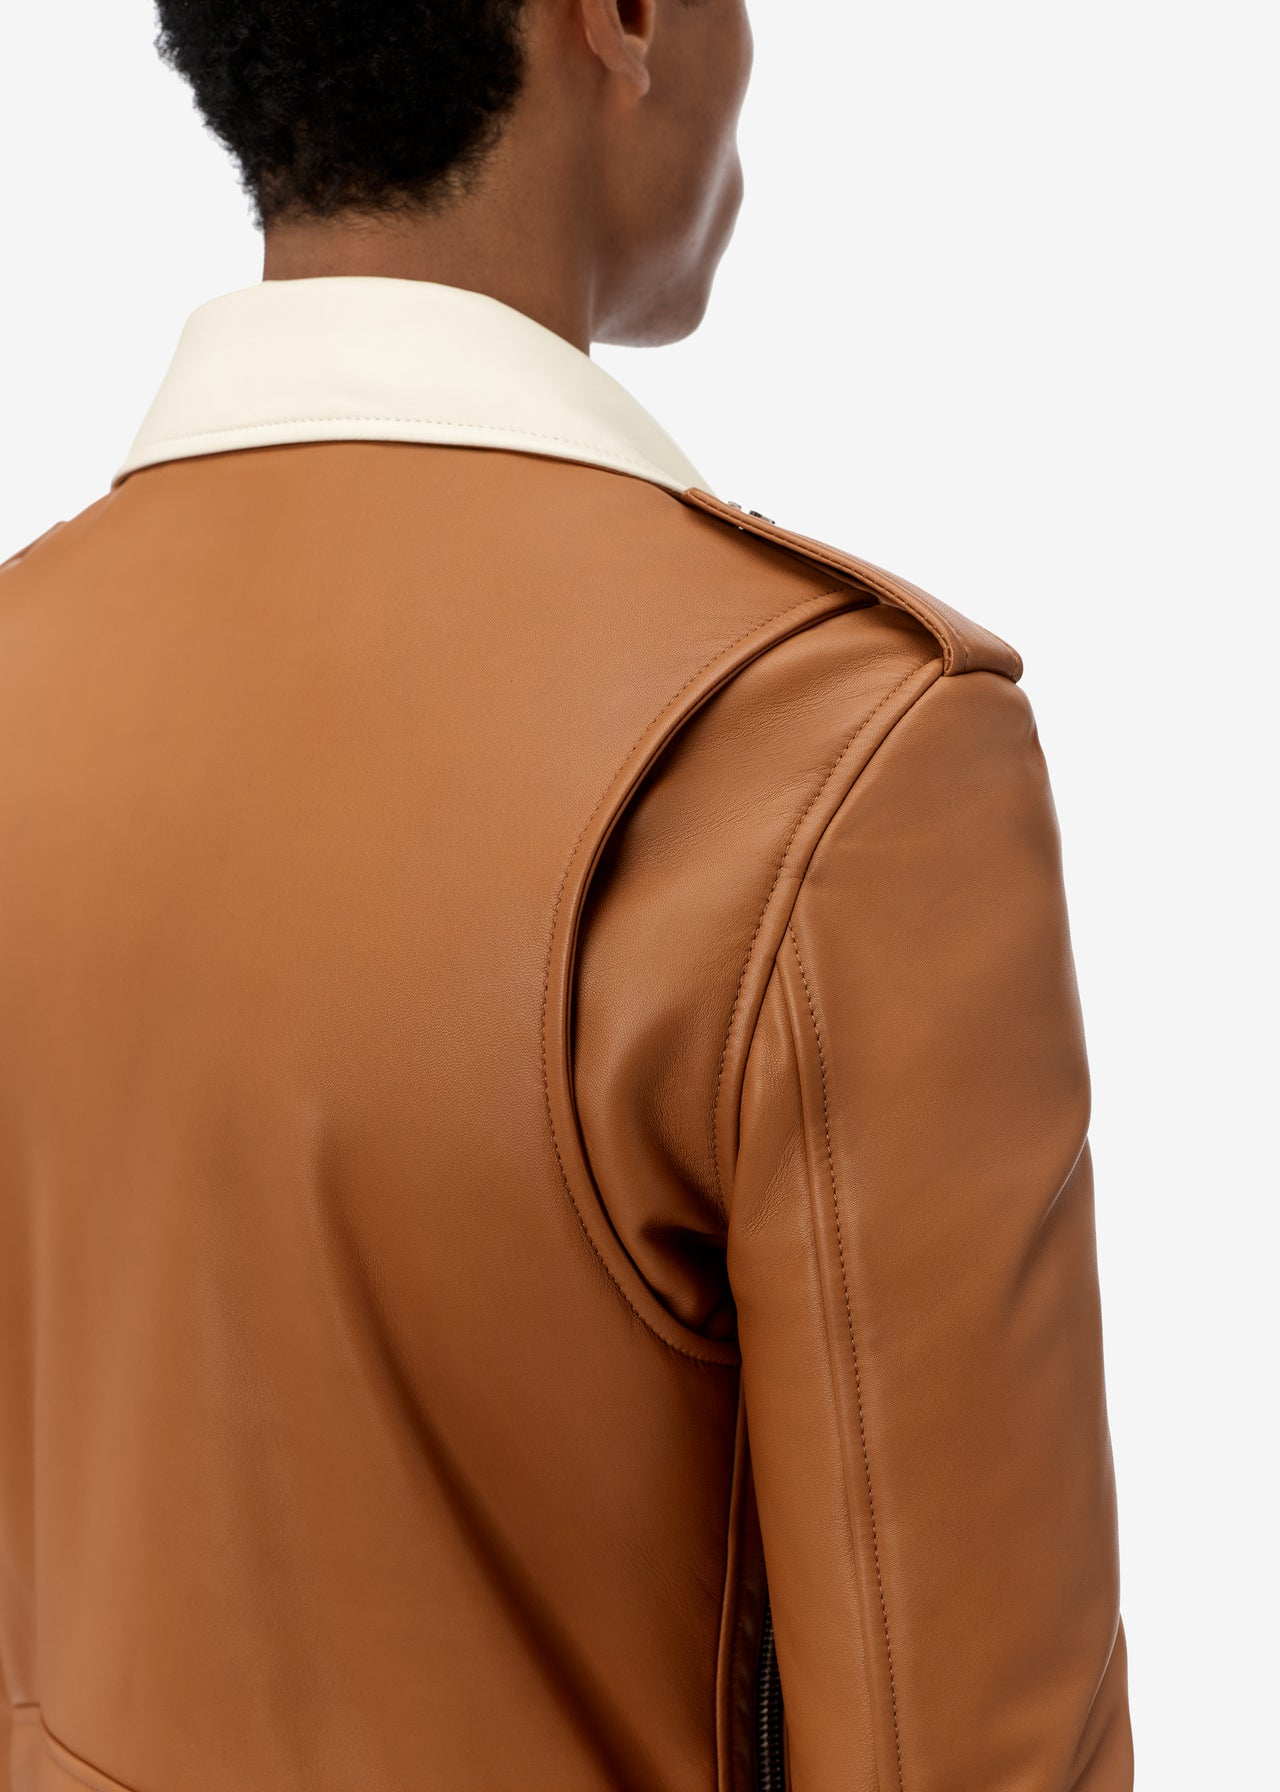 CONTRAST COLLAR LEATHER PERFECTO - BROWN / ALABASTER